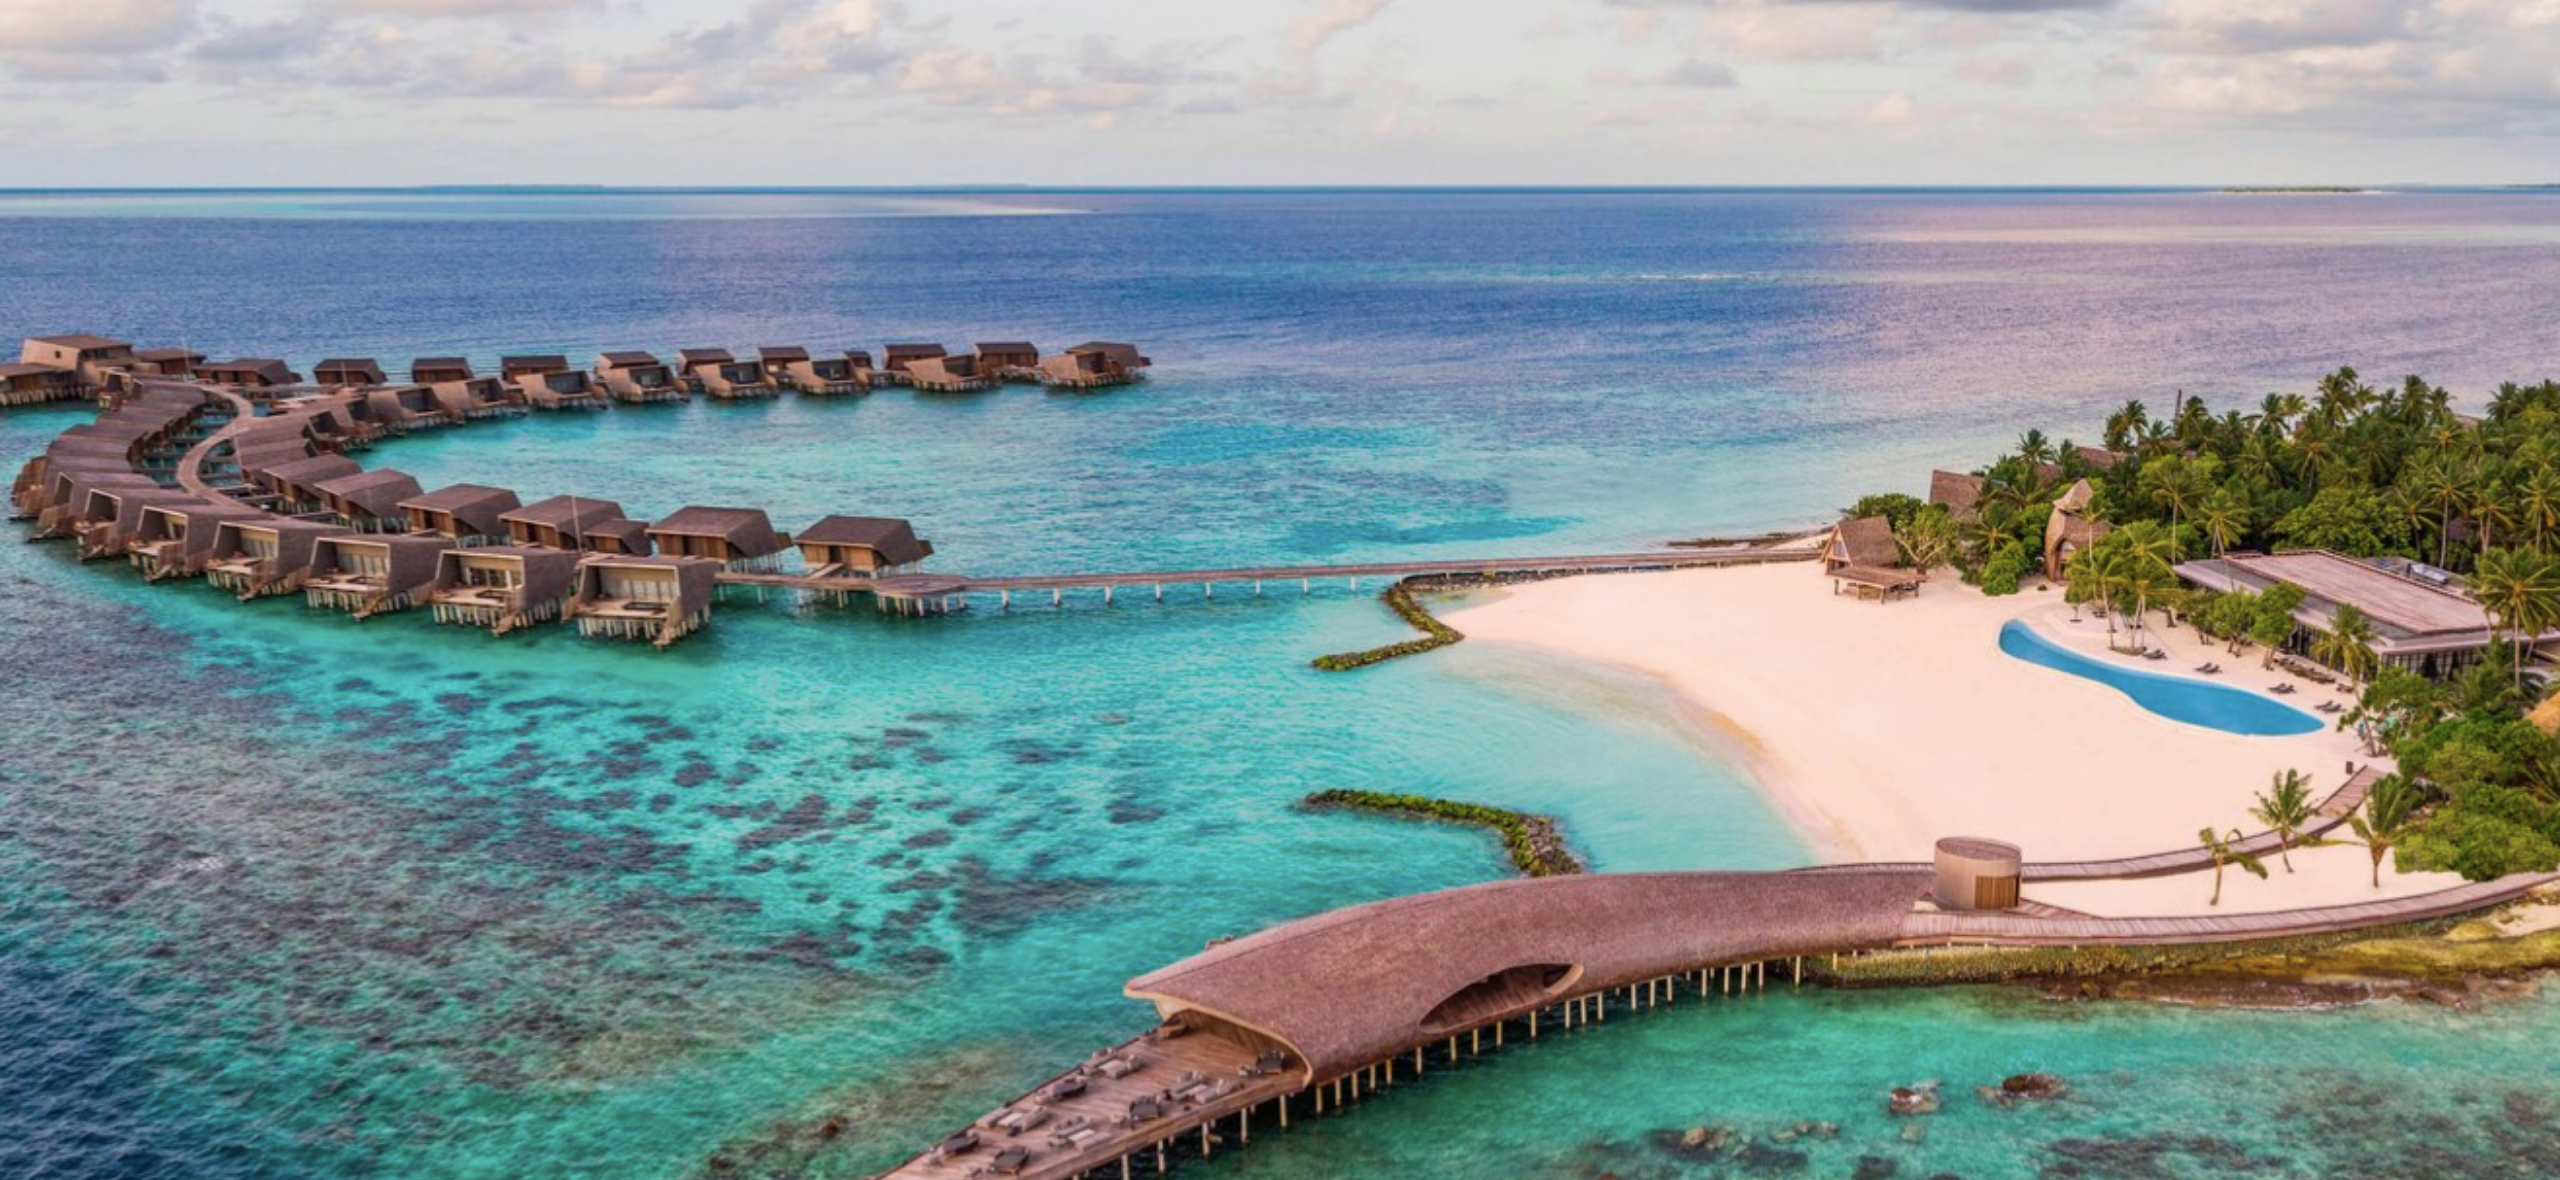 The Stunning Maldives Island You Can Have All to Yourself for HK$1.9 million per Night